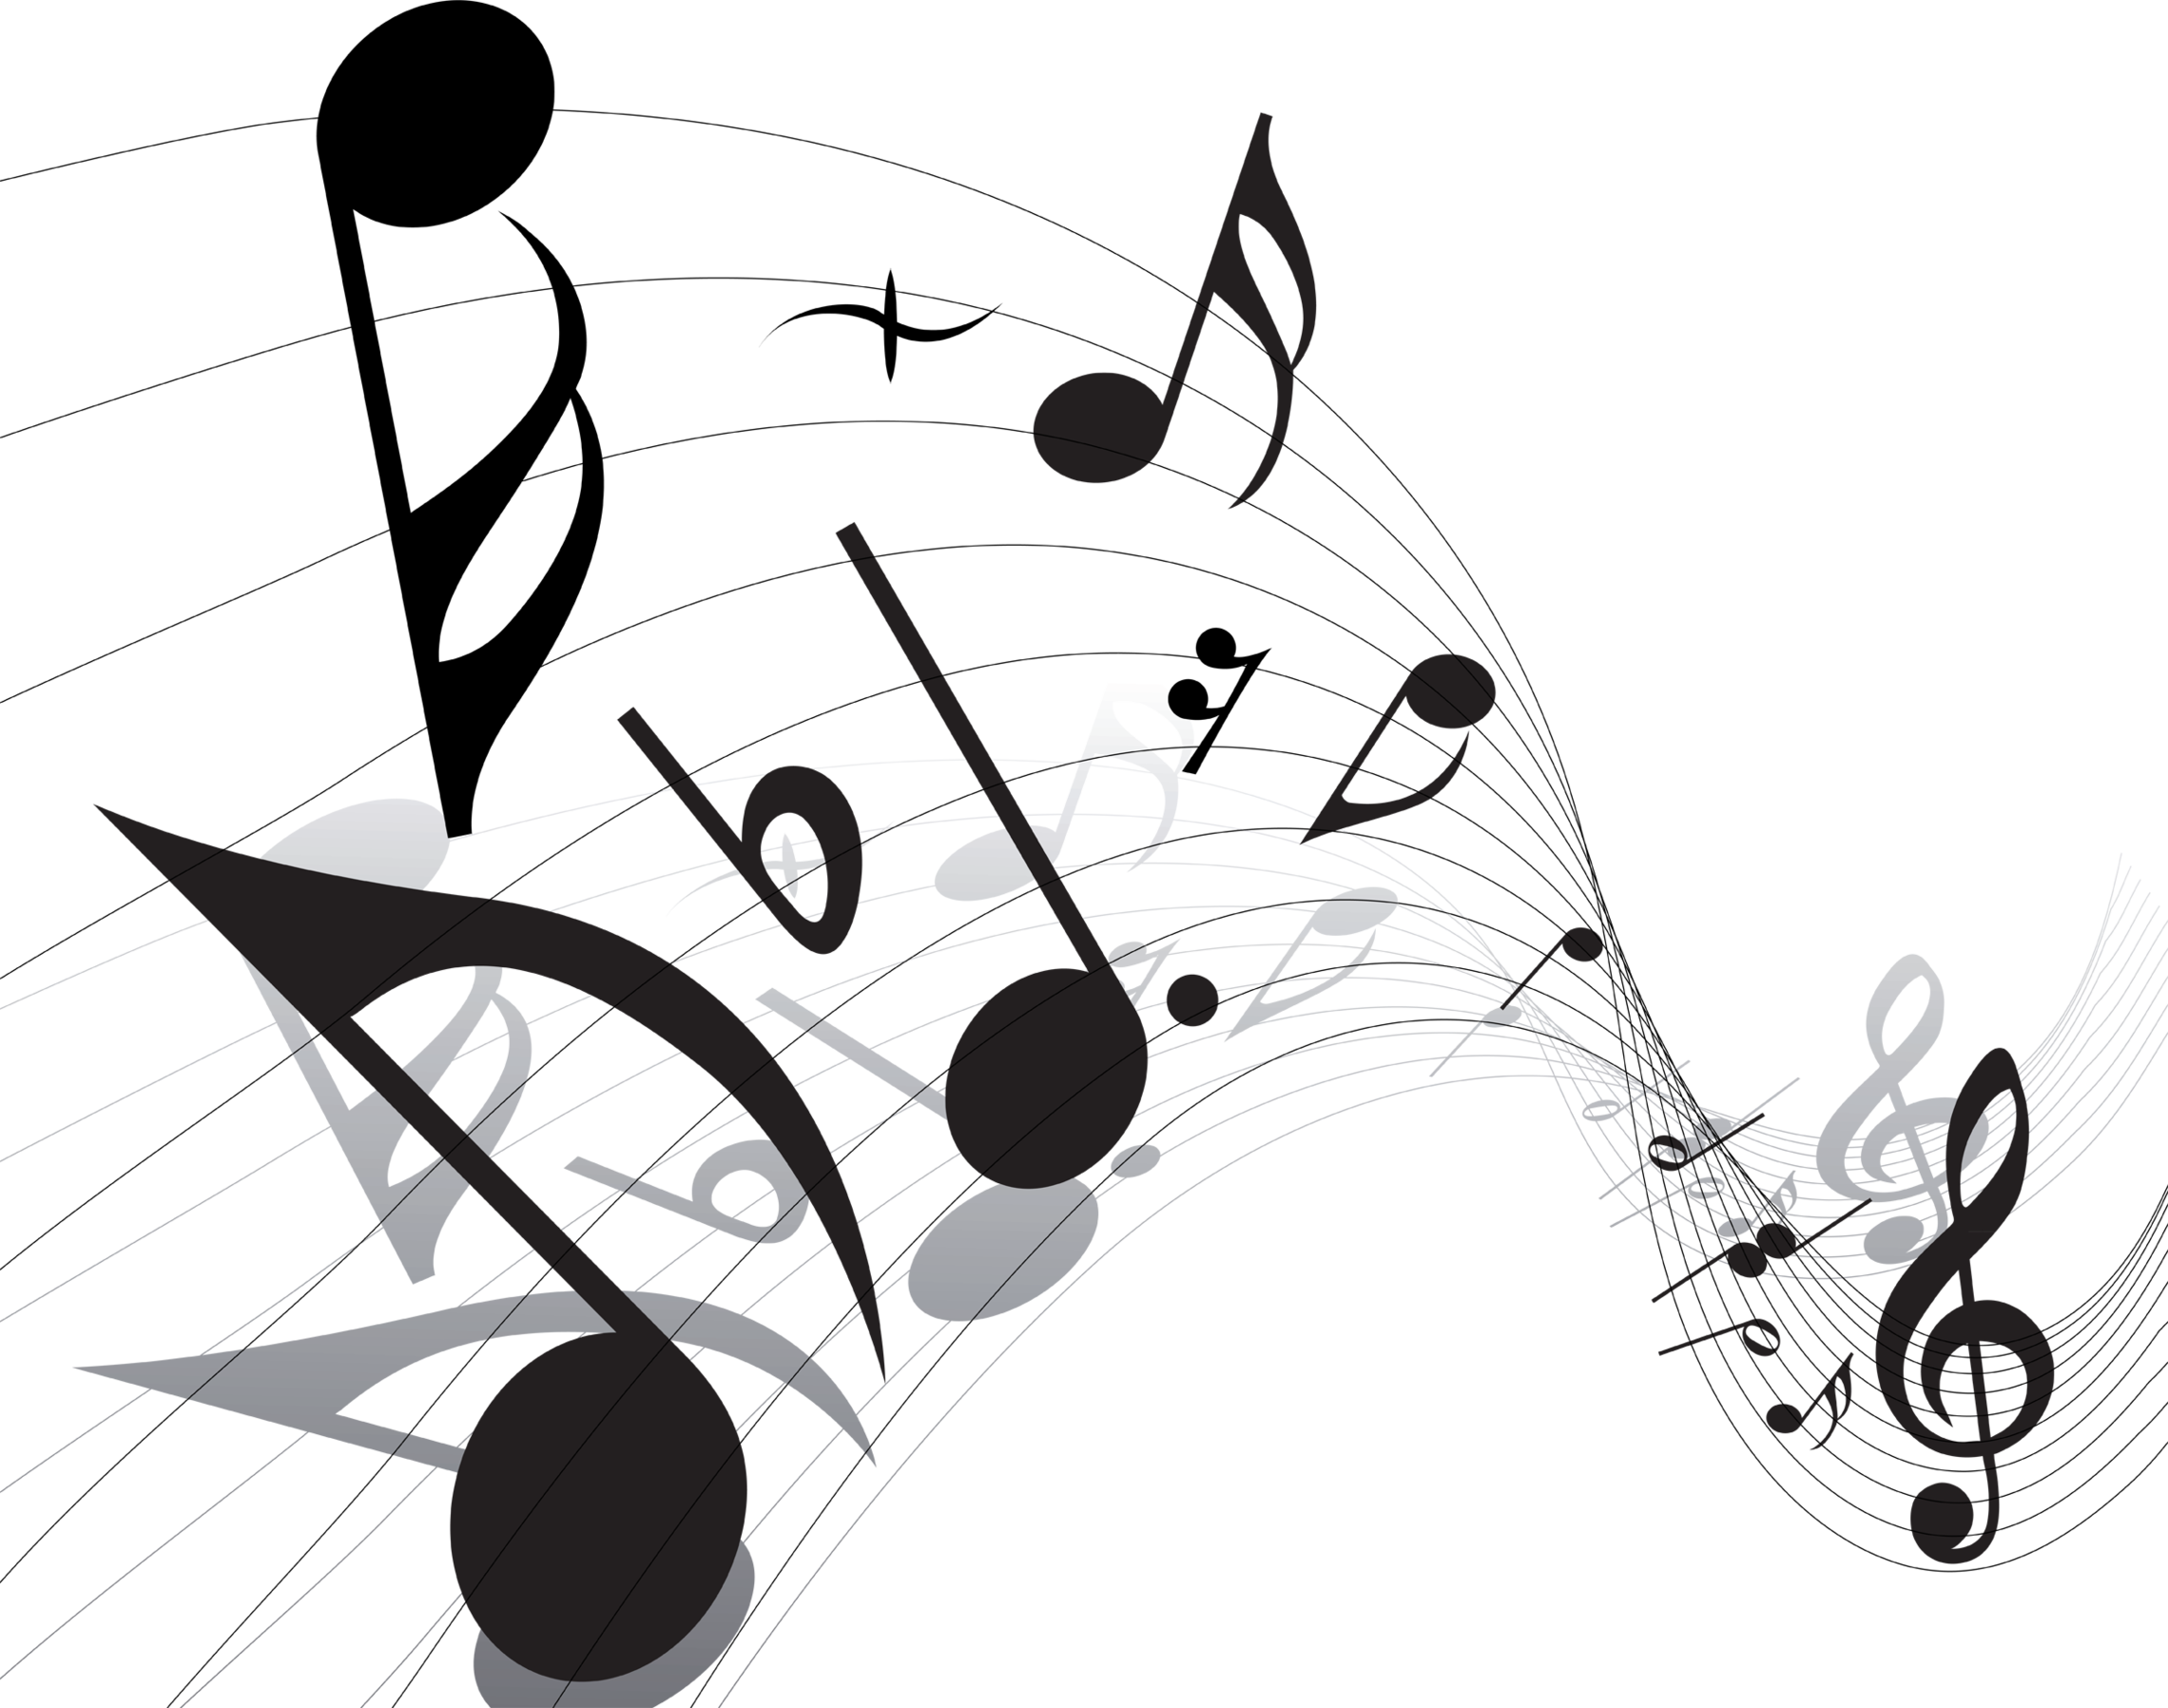 Music note design png. Notes